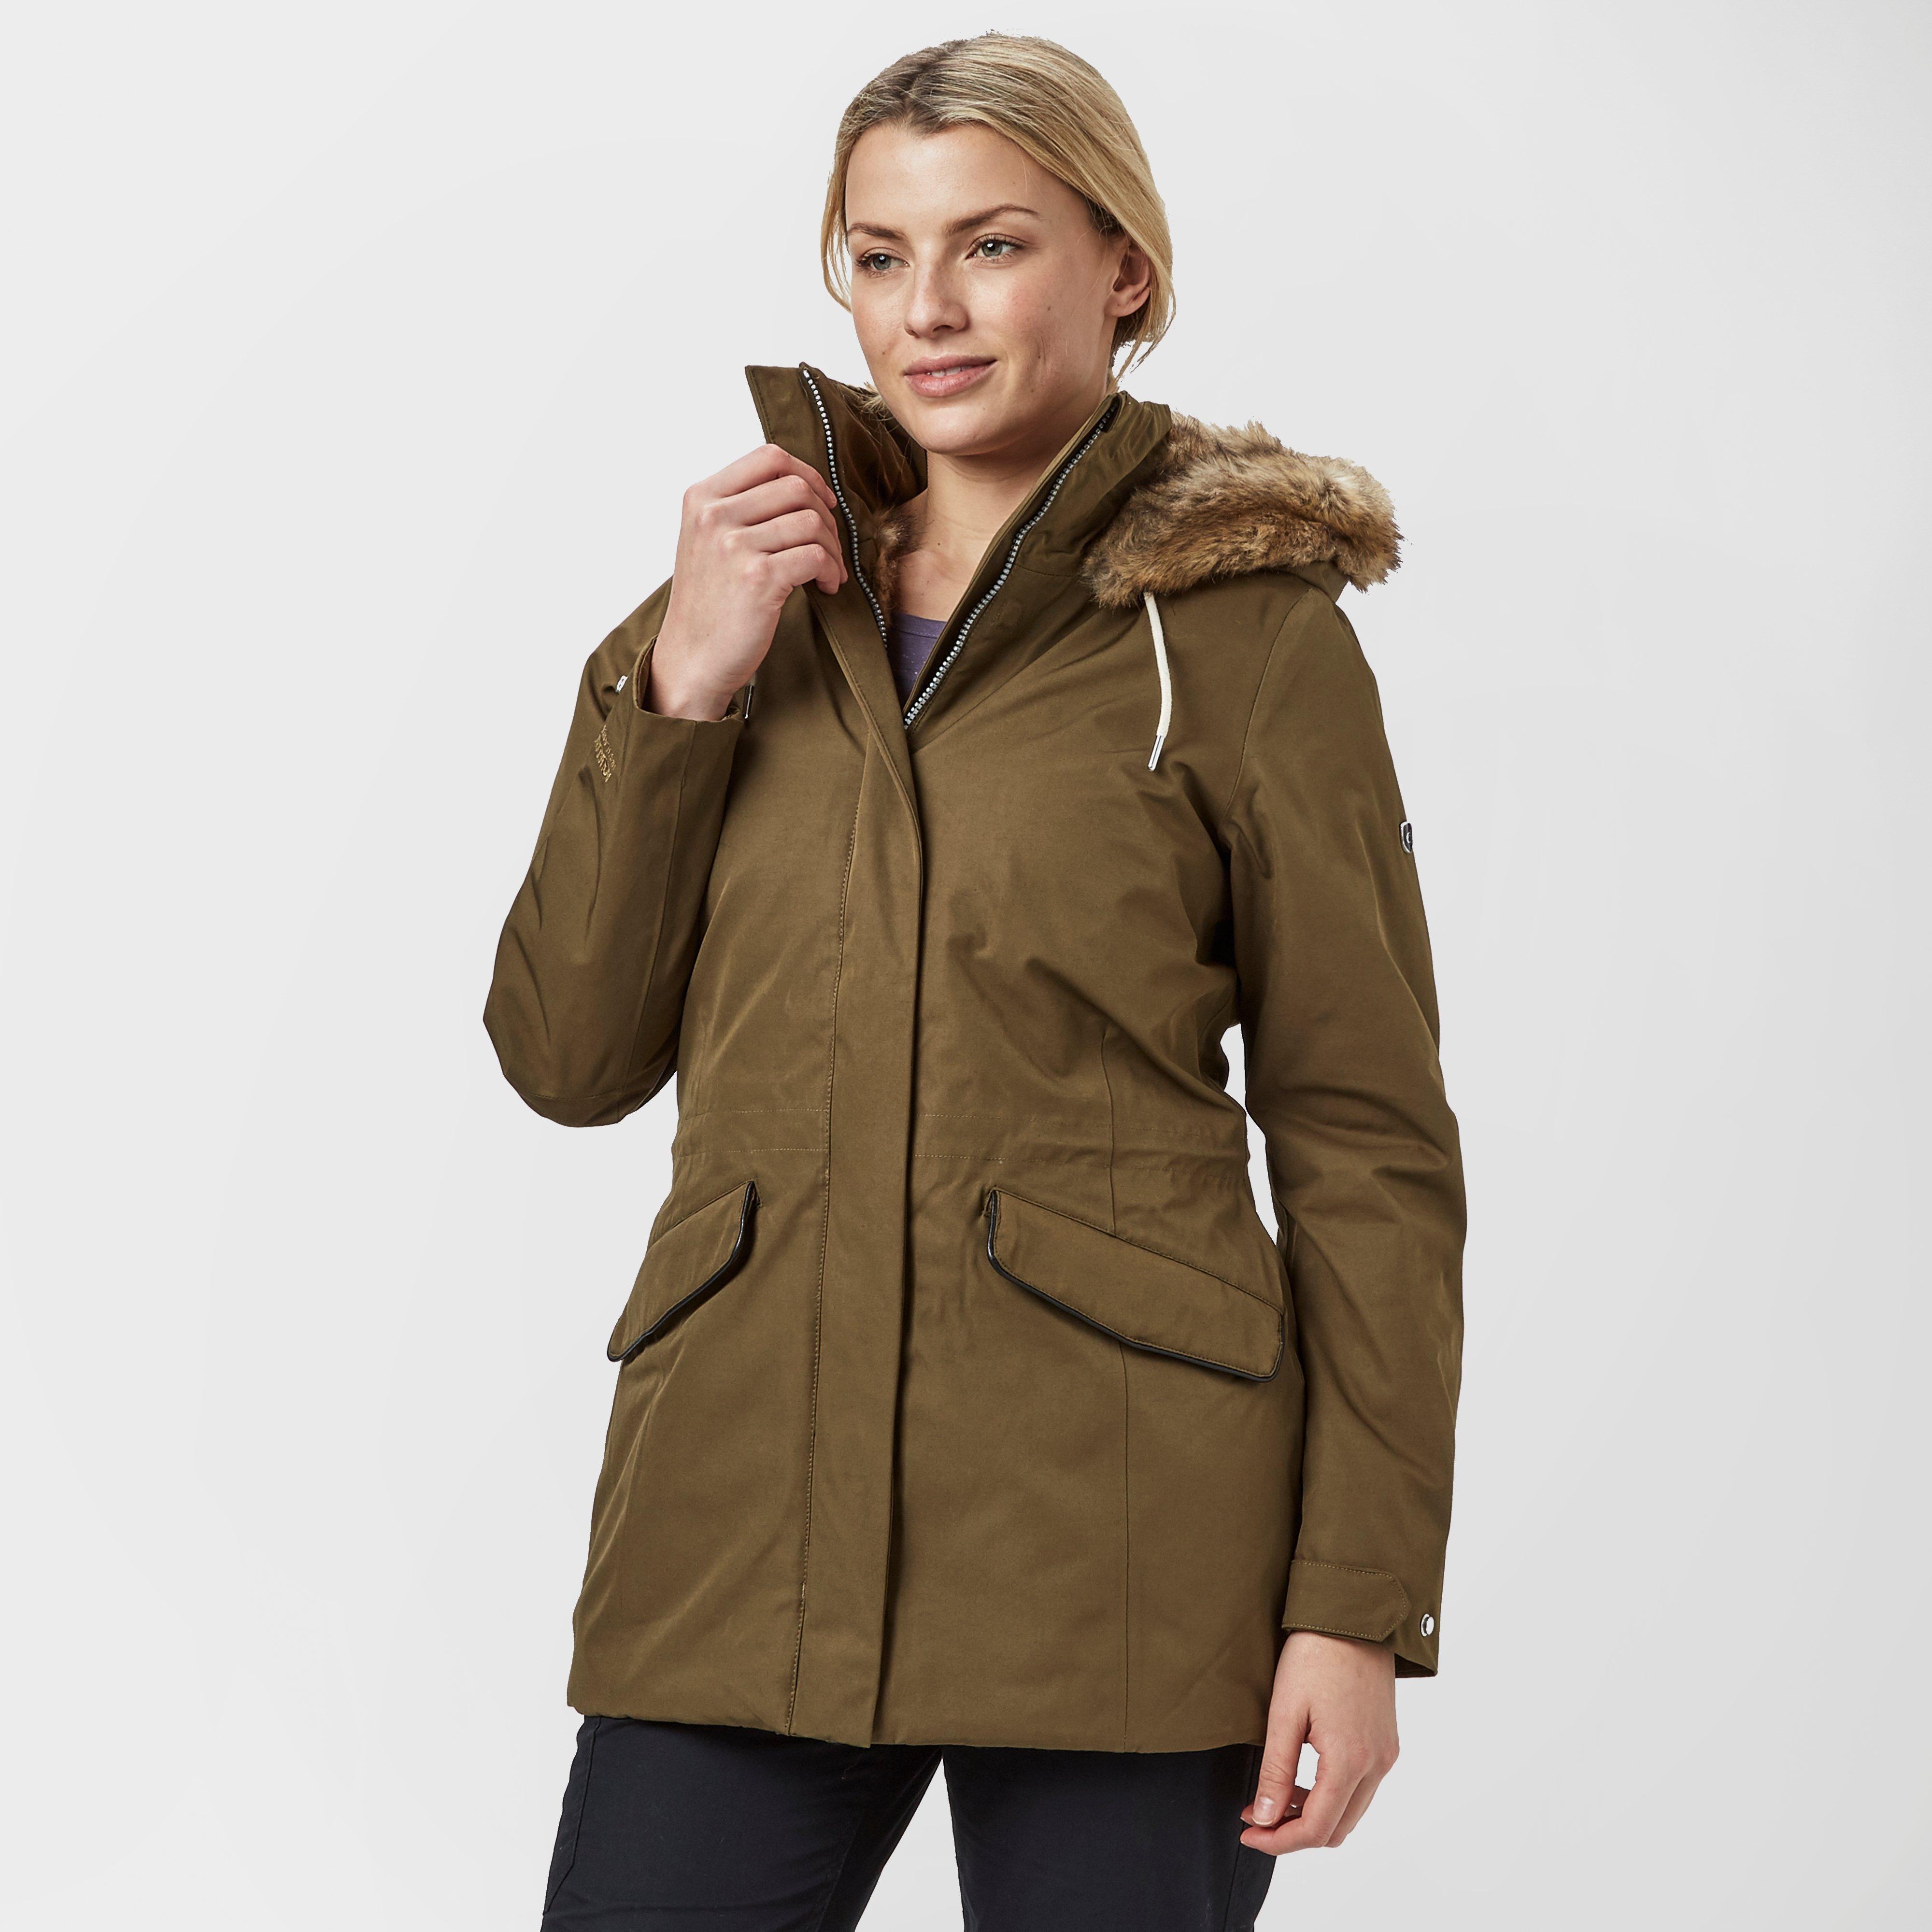 Craghoppers - Jackets, Boots and Equipment | Blacks : craghoppers quilted jacket - Adamdwight.com